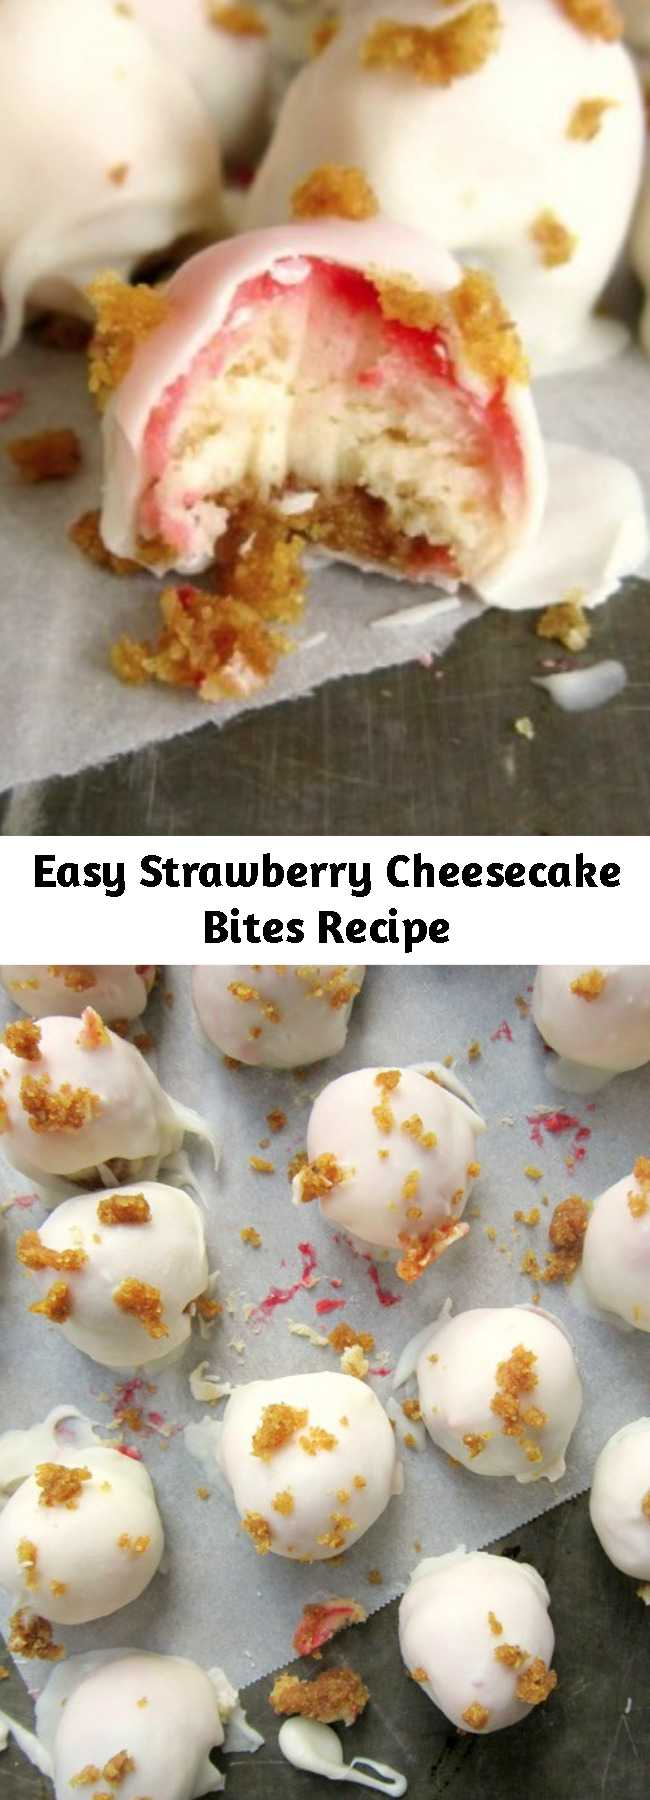 Easy Strawberry Cheesecake Bites Recipe - These little Strawberry Cheesecake Bites are just the perfect size!  And having them dipped in white chocolate is even an extra treat!